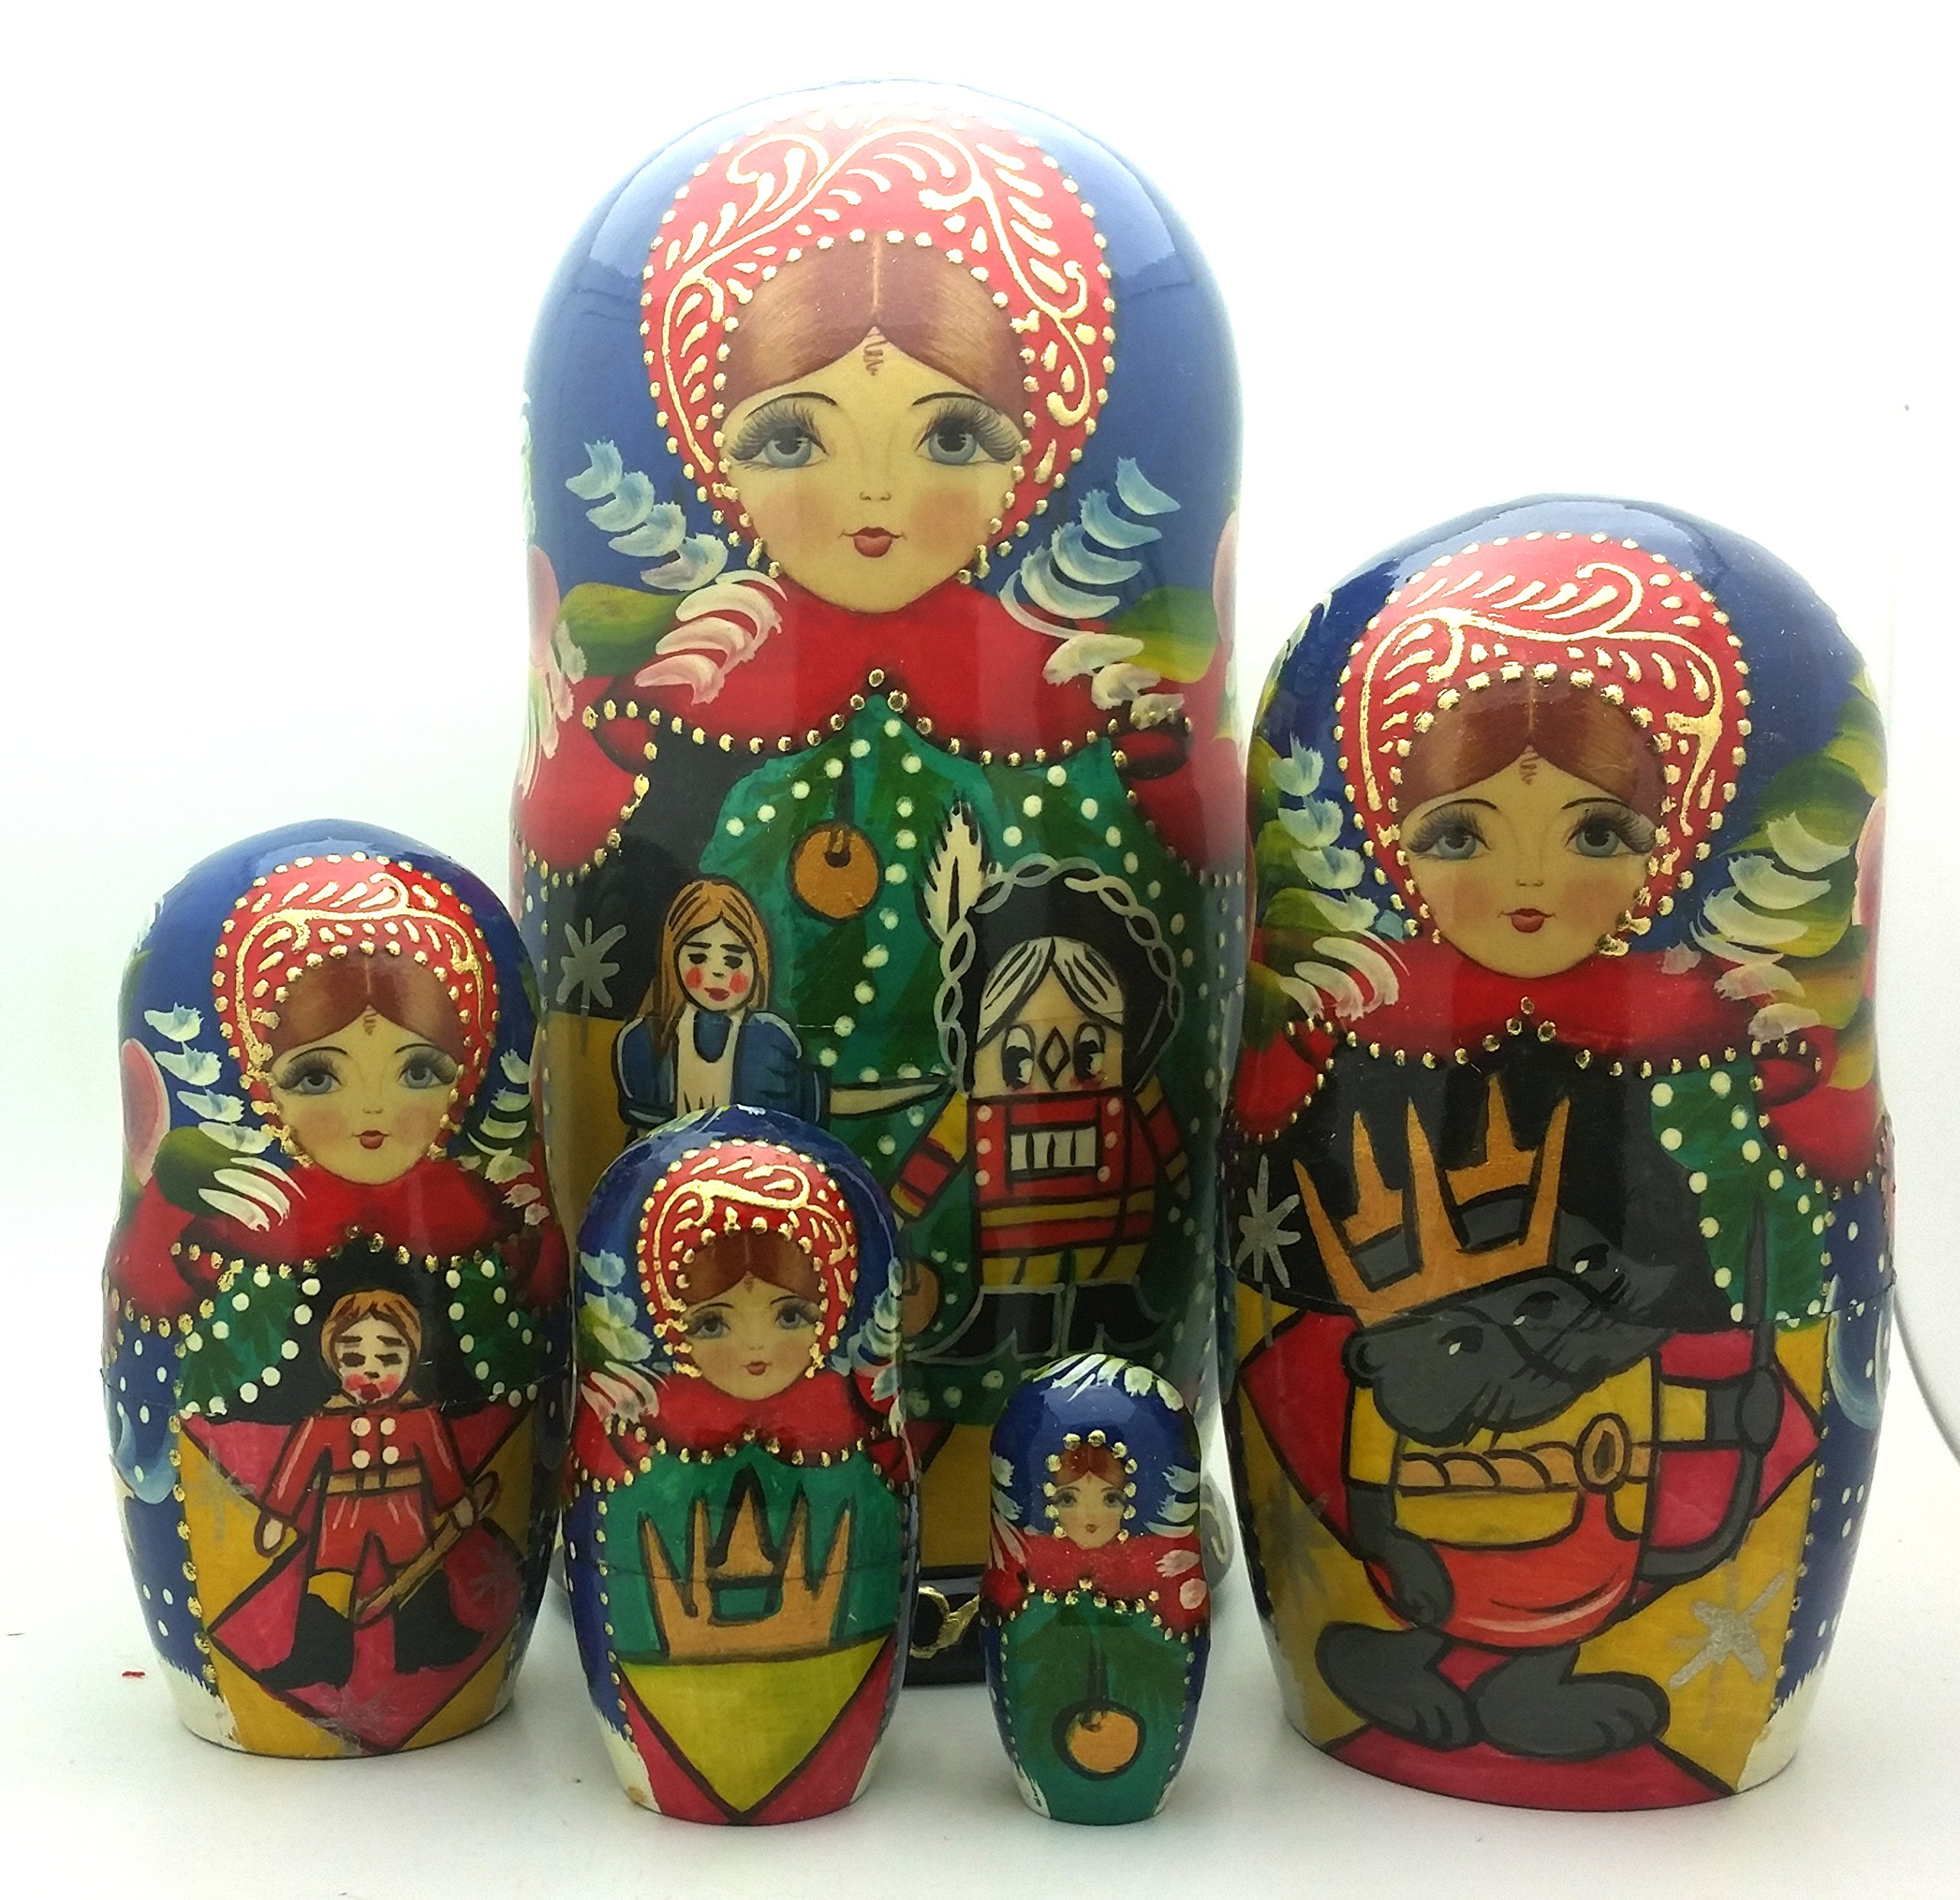 Nutcracker fairy tale Russian Hand Carved Hand Painted Nesting 5 piece DOLL Set 7'' tall / ballet by BuyRussianGifts (Image #1)